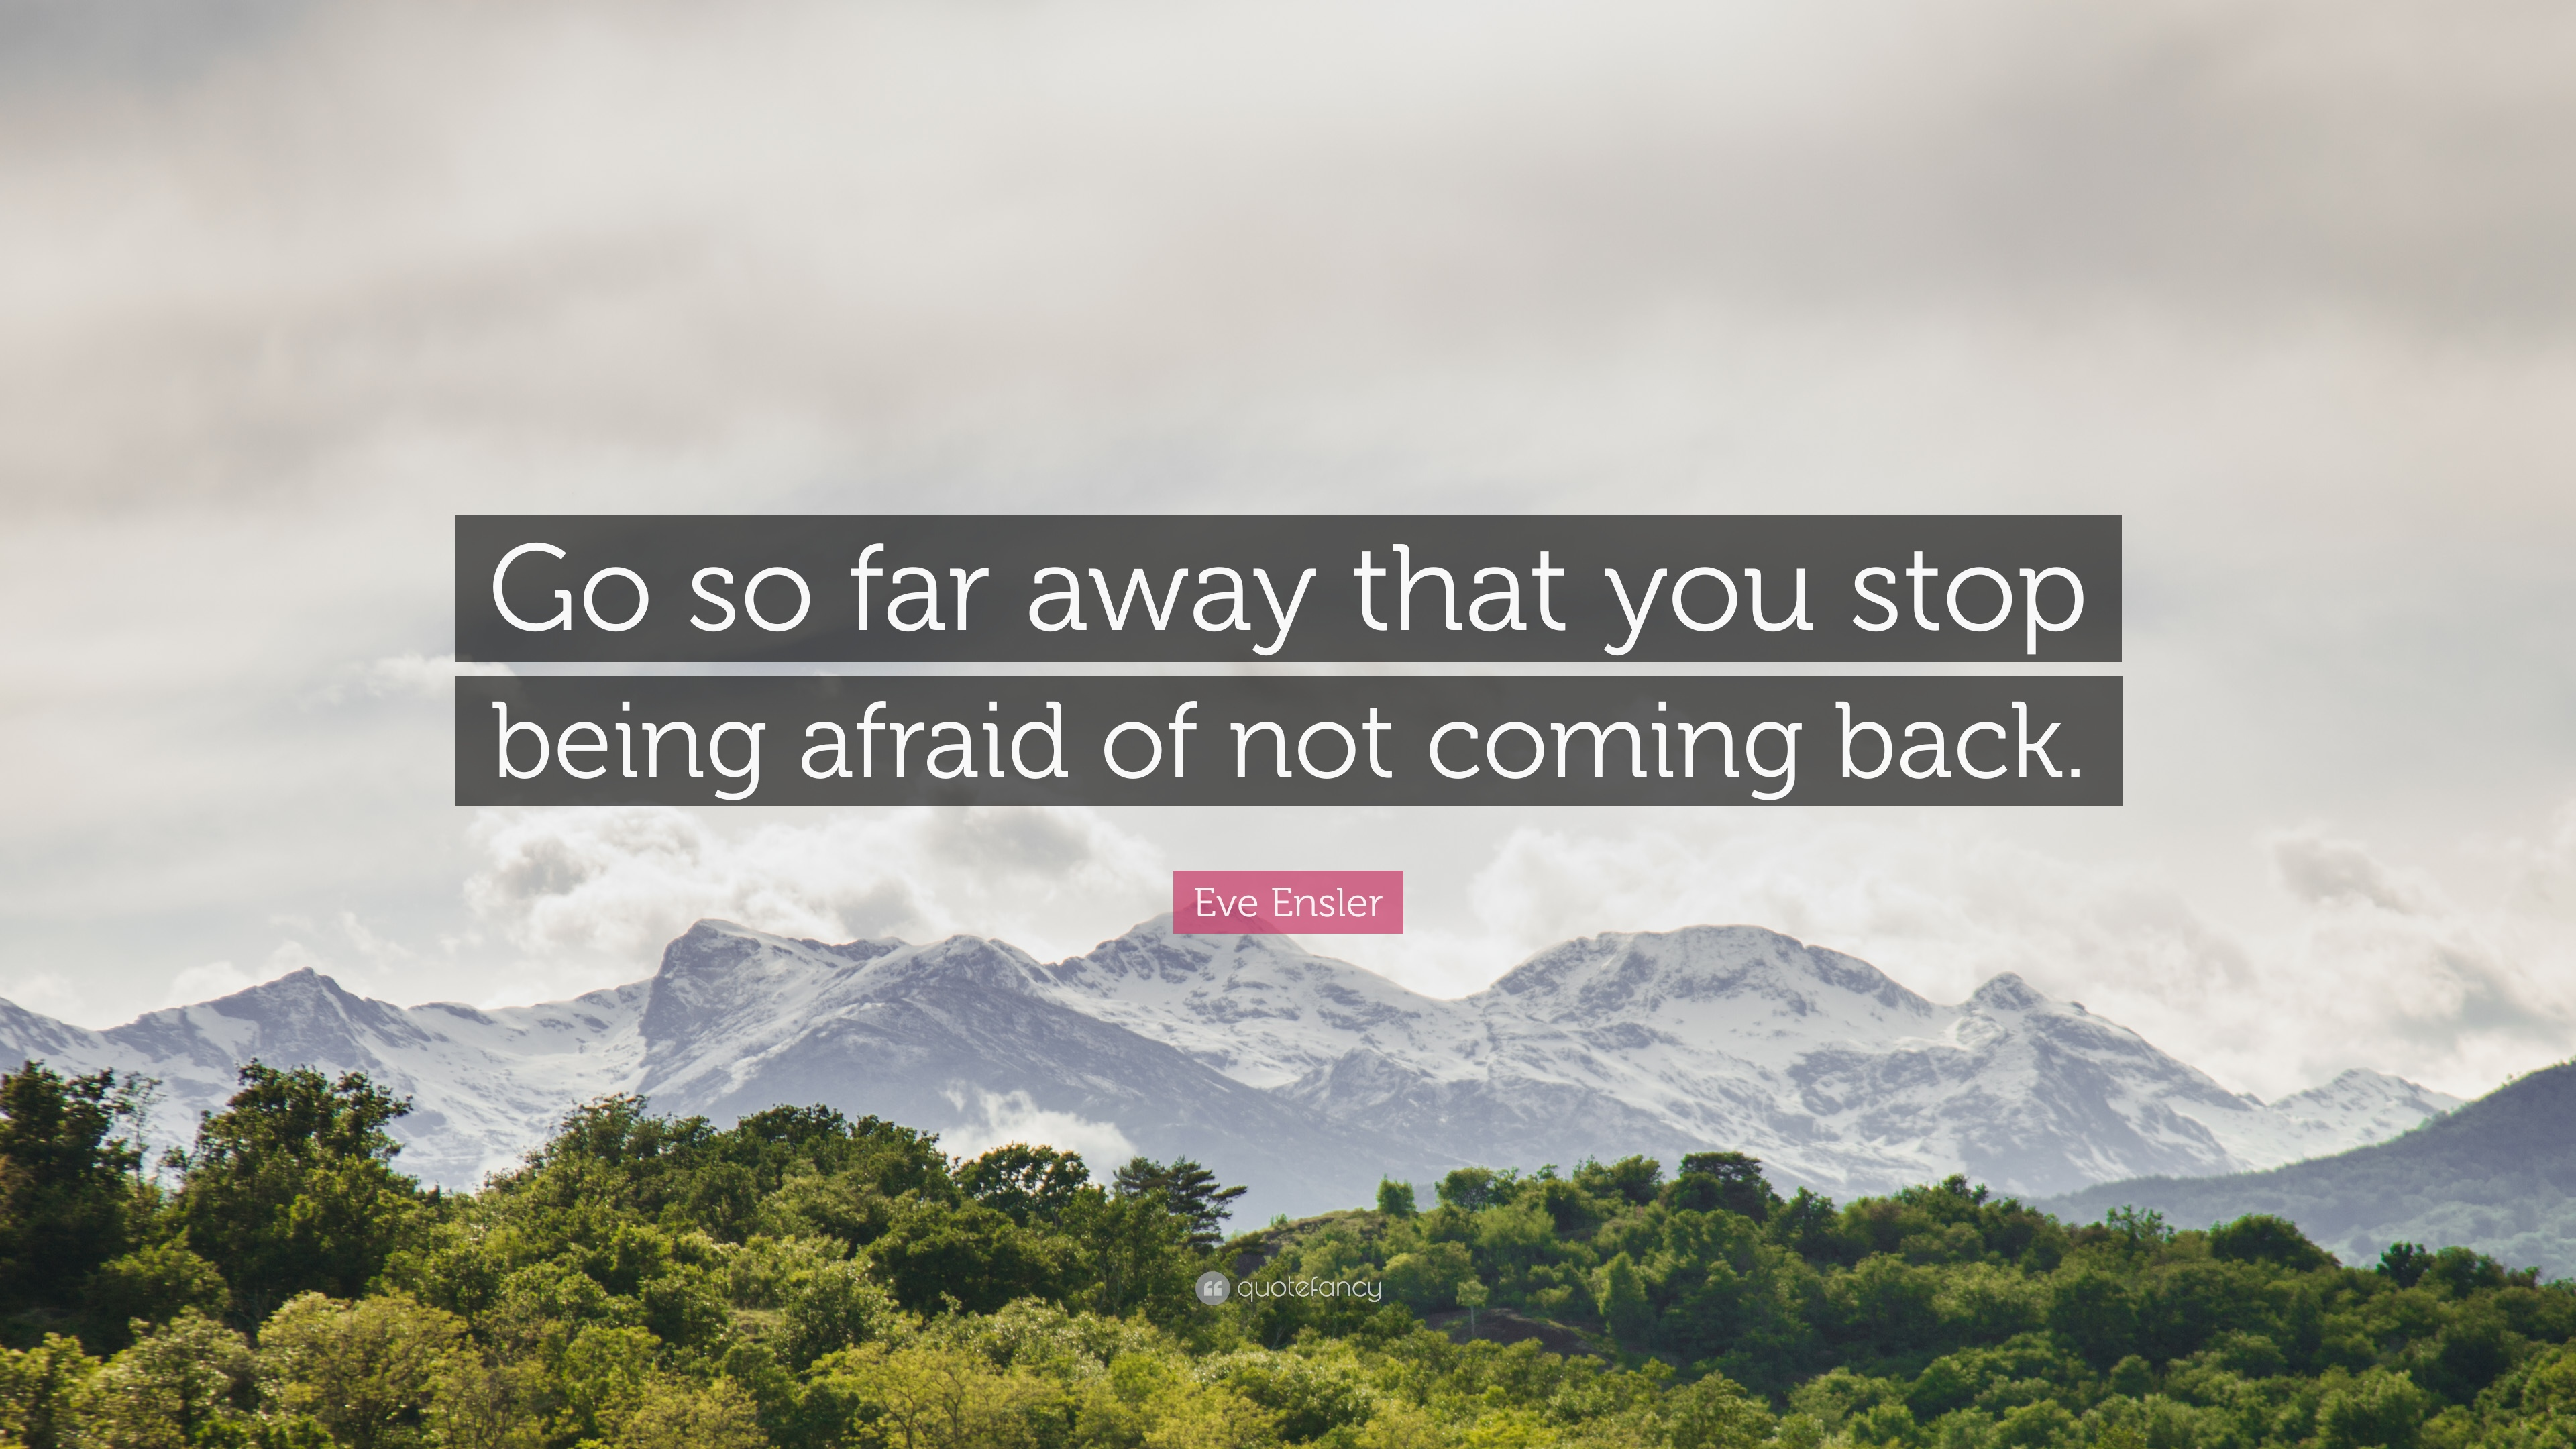 Eve Ensler Quote Go So Far Away That You Stop Being Afraid Of Not